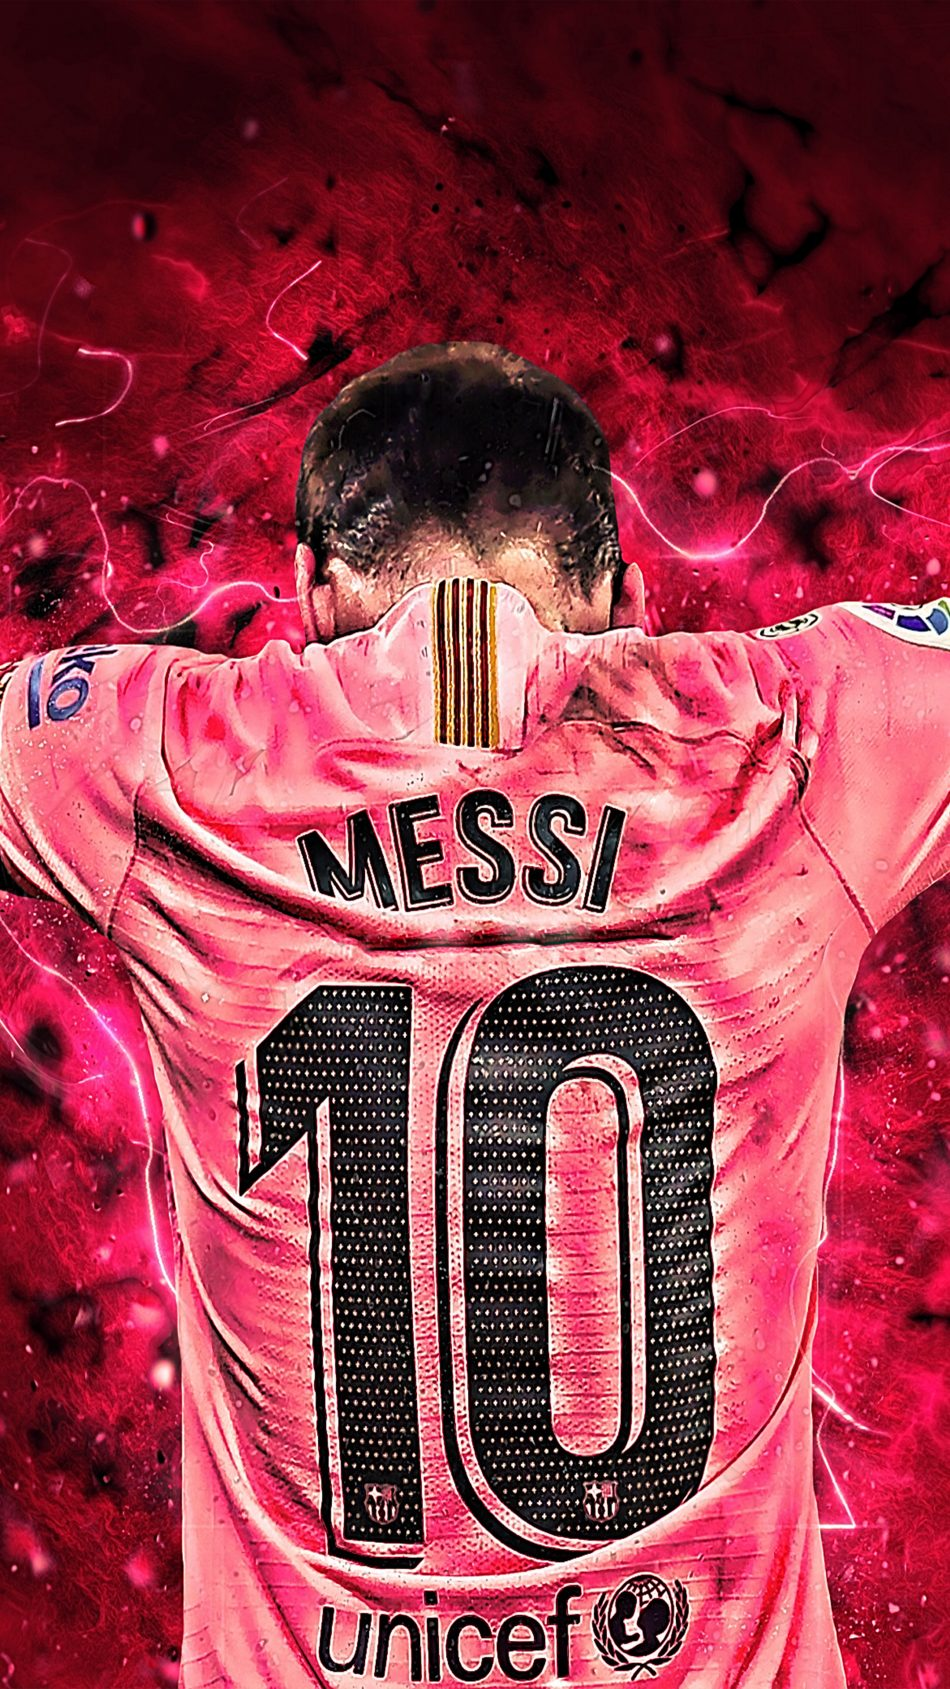 messi 10 art graphics free 4k ultra hd mobile wallpaper in 2020 lionel messi wallpapers messi messi 10 messi 10 art graphics free 4k ultra hd